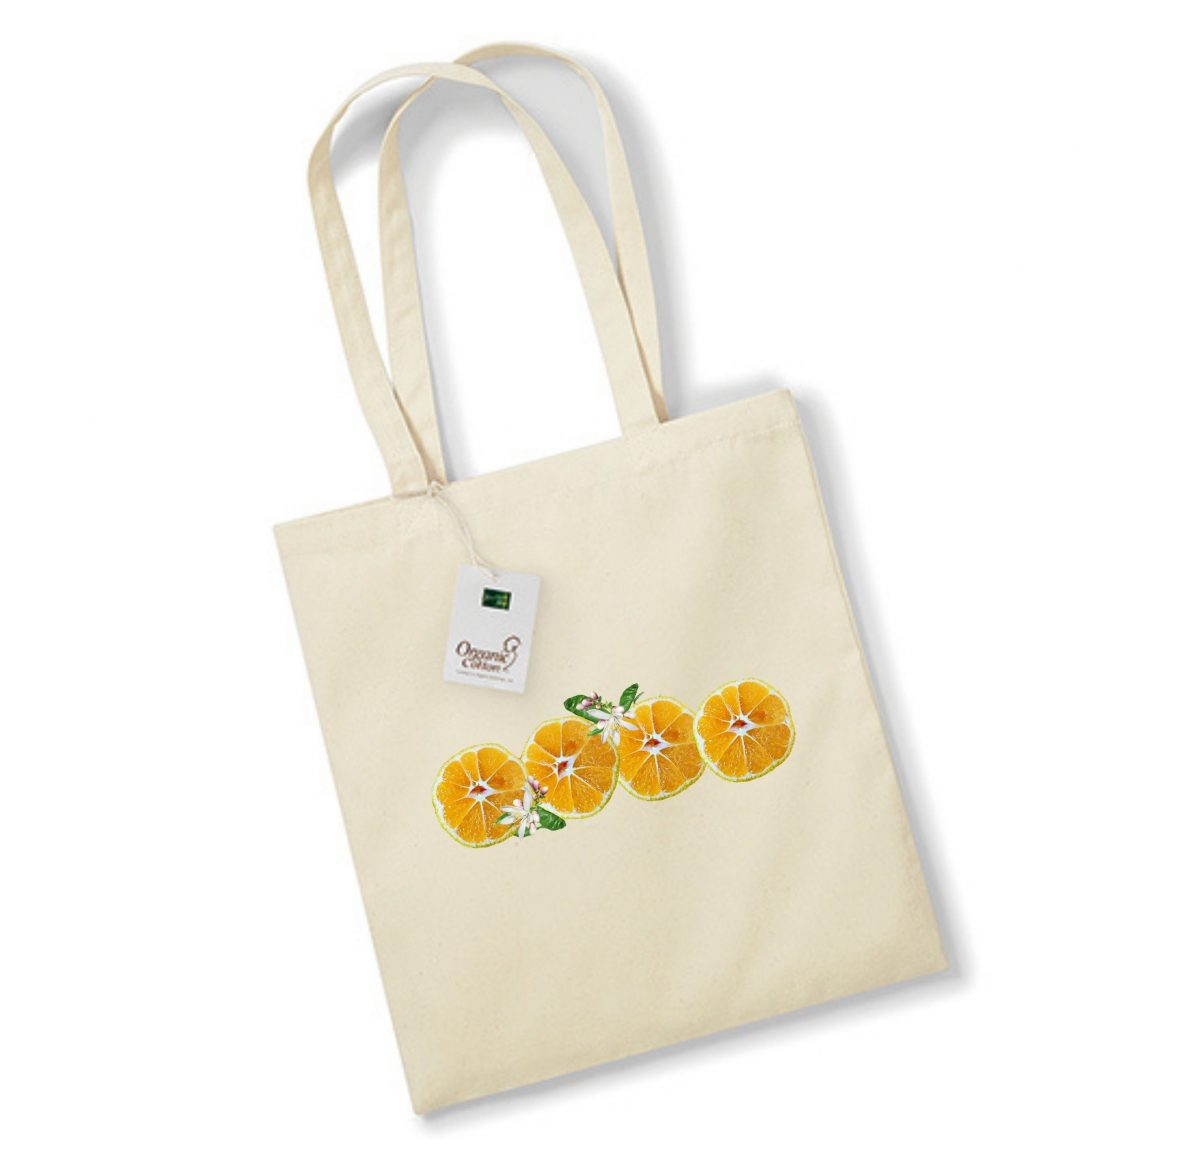 Sac de courses – Rondelles d'Orange